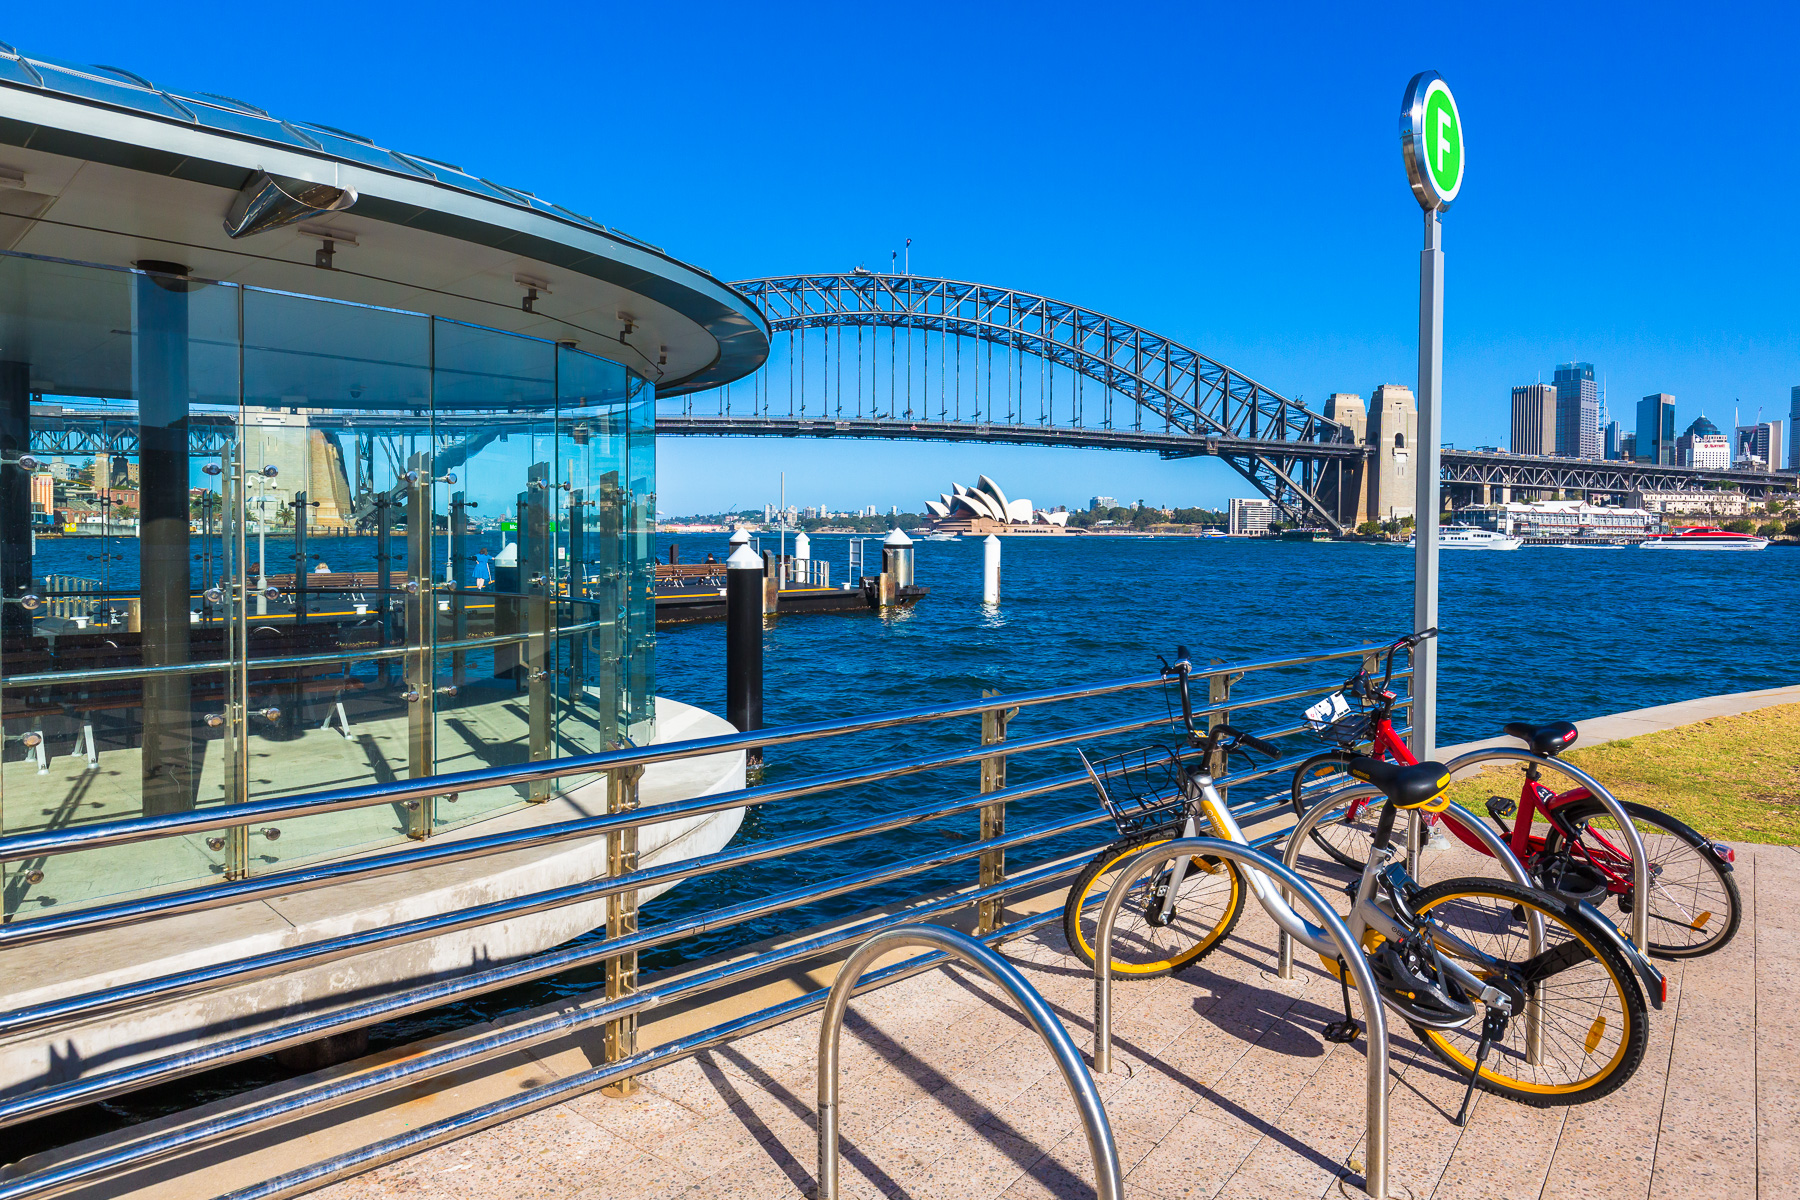 McMahons Point ferry wharf 8 minutes walk away from our home.